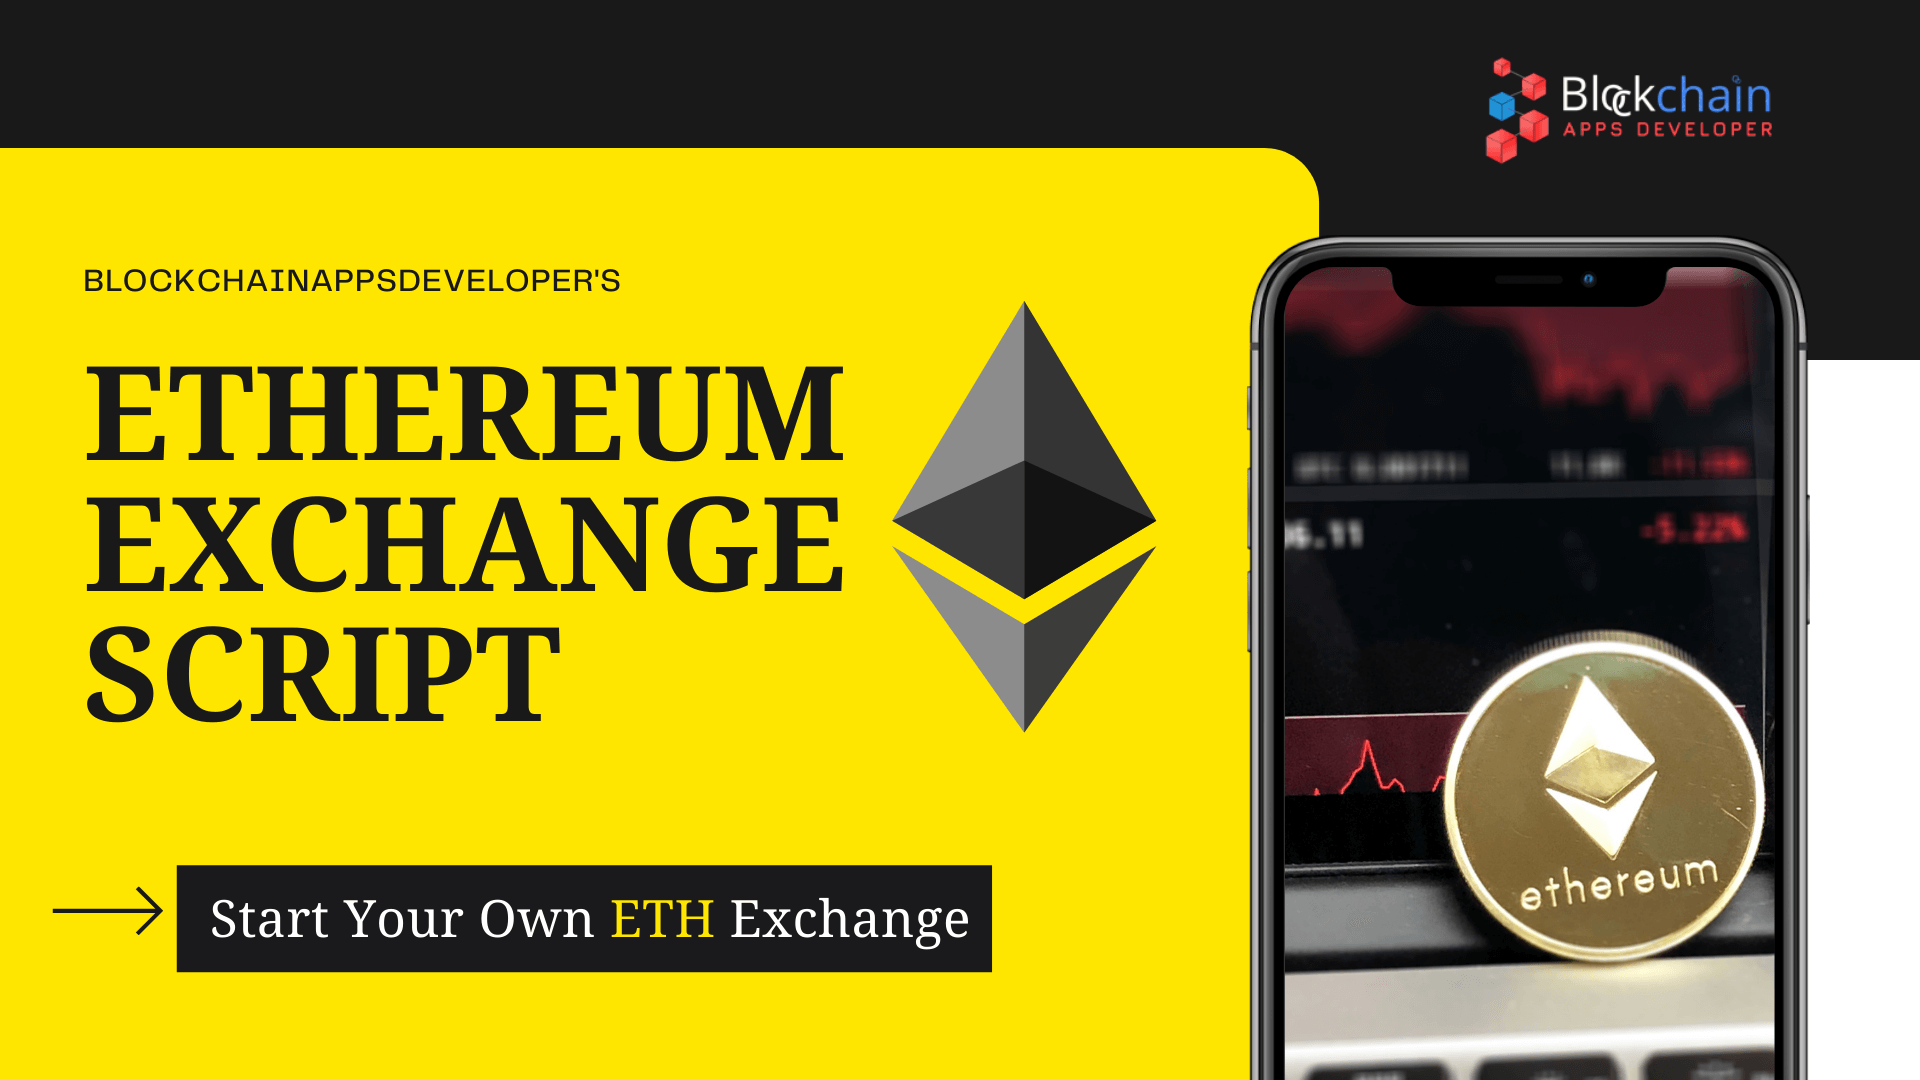 Ethereum Exchange Script To Launch Your Own ETH Exchange Instantly!